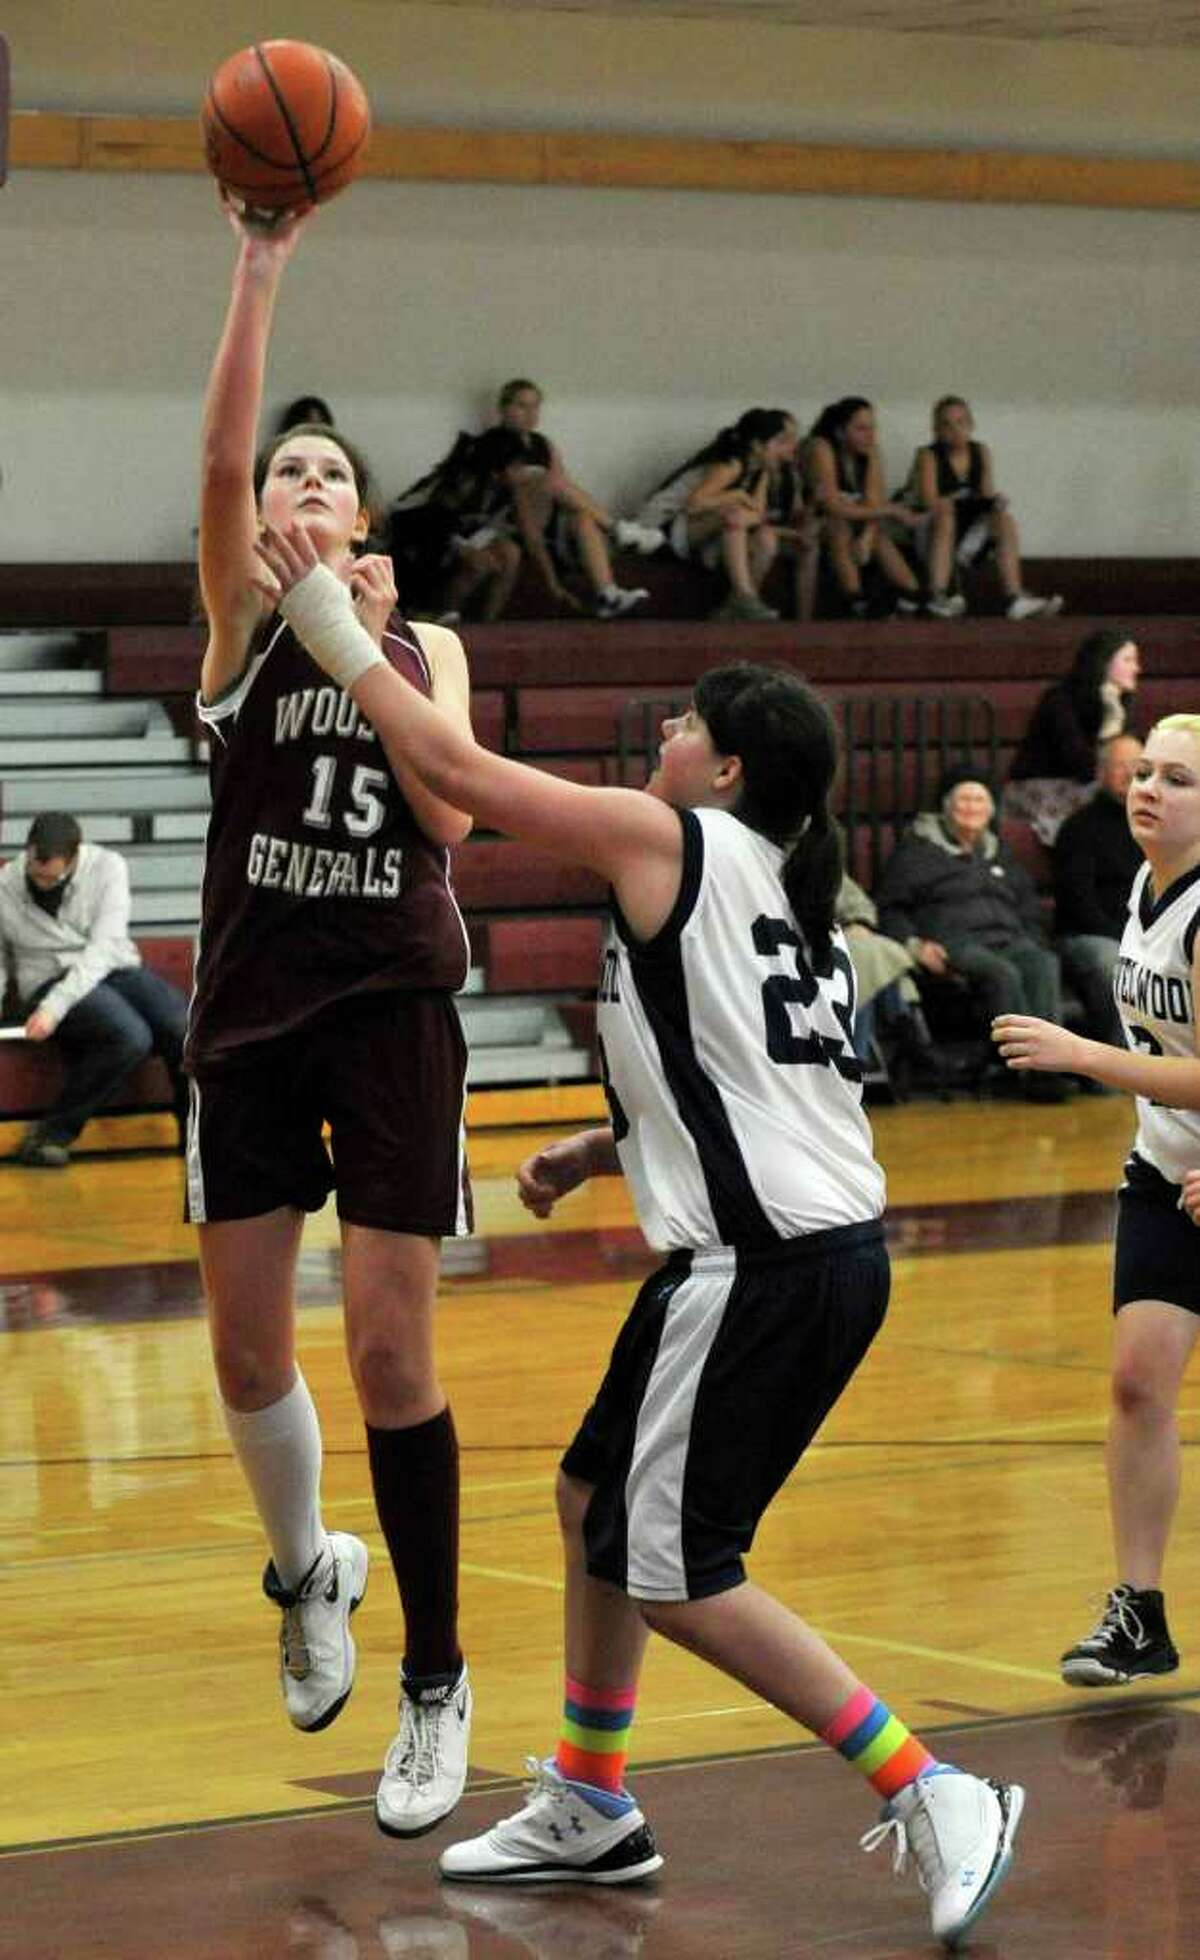 Wooster's Blair Hamilton shoots while under pressure from Marvelwood's Molleigh Sanes during their game at Wooster School in Danbury on Wednesday, Feb. 15, 2012. Wooster won 48-27 giving coach David MacNutt his 700th career victory.